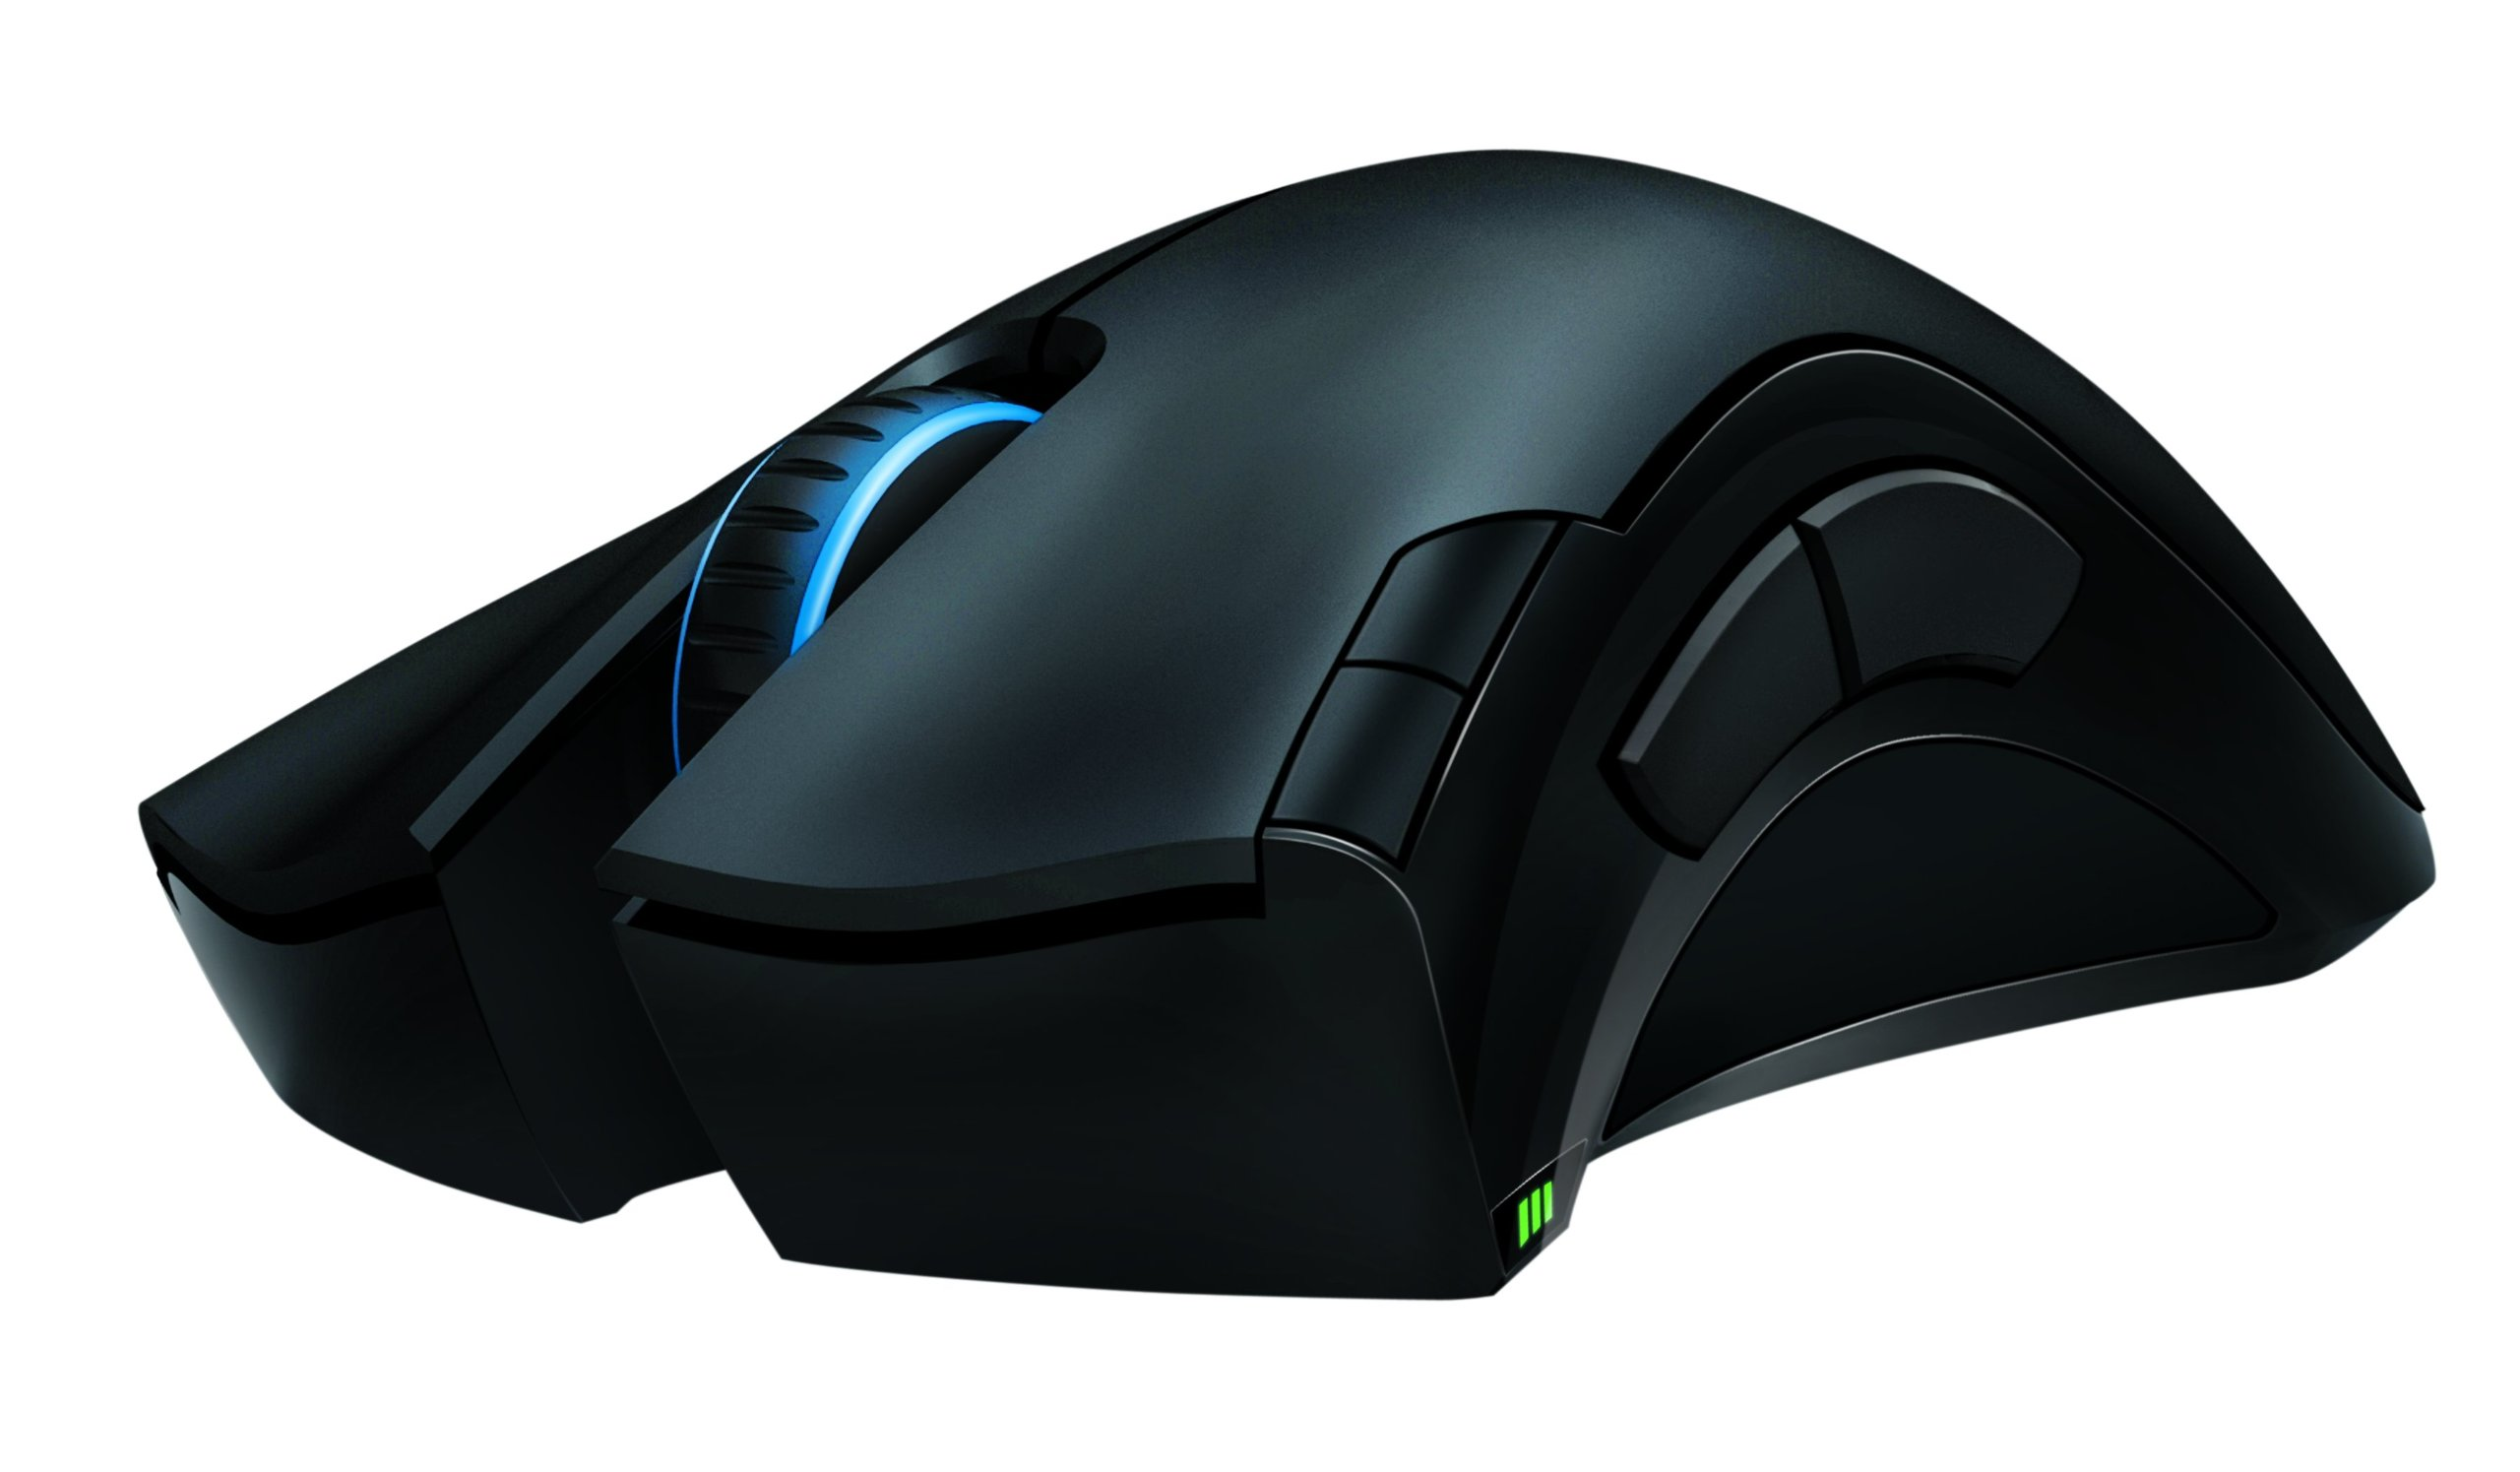 Razer Mamba Rechargable Wireless PC Gaming Mouse by Razer